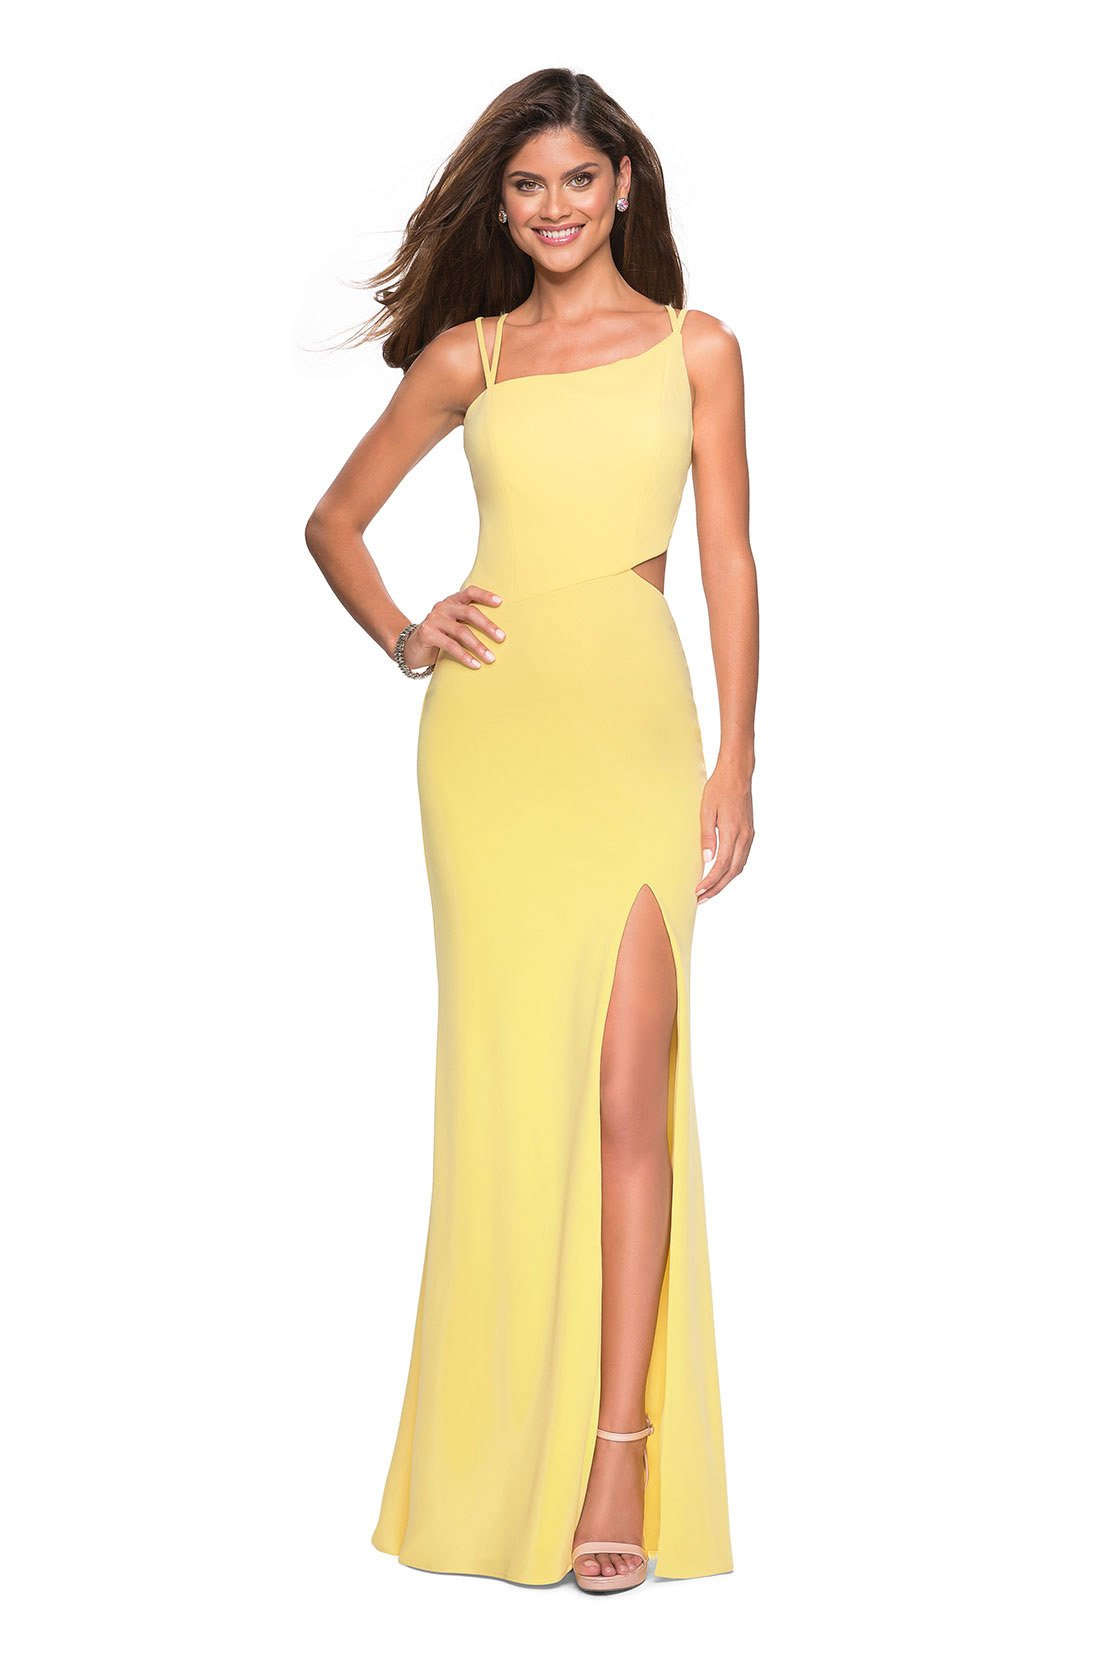 La Femme - Asymmetrical Neckline Strappy Jersey Evening Dress 27126 - 1 pc Yellow In Size 2 Available